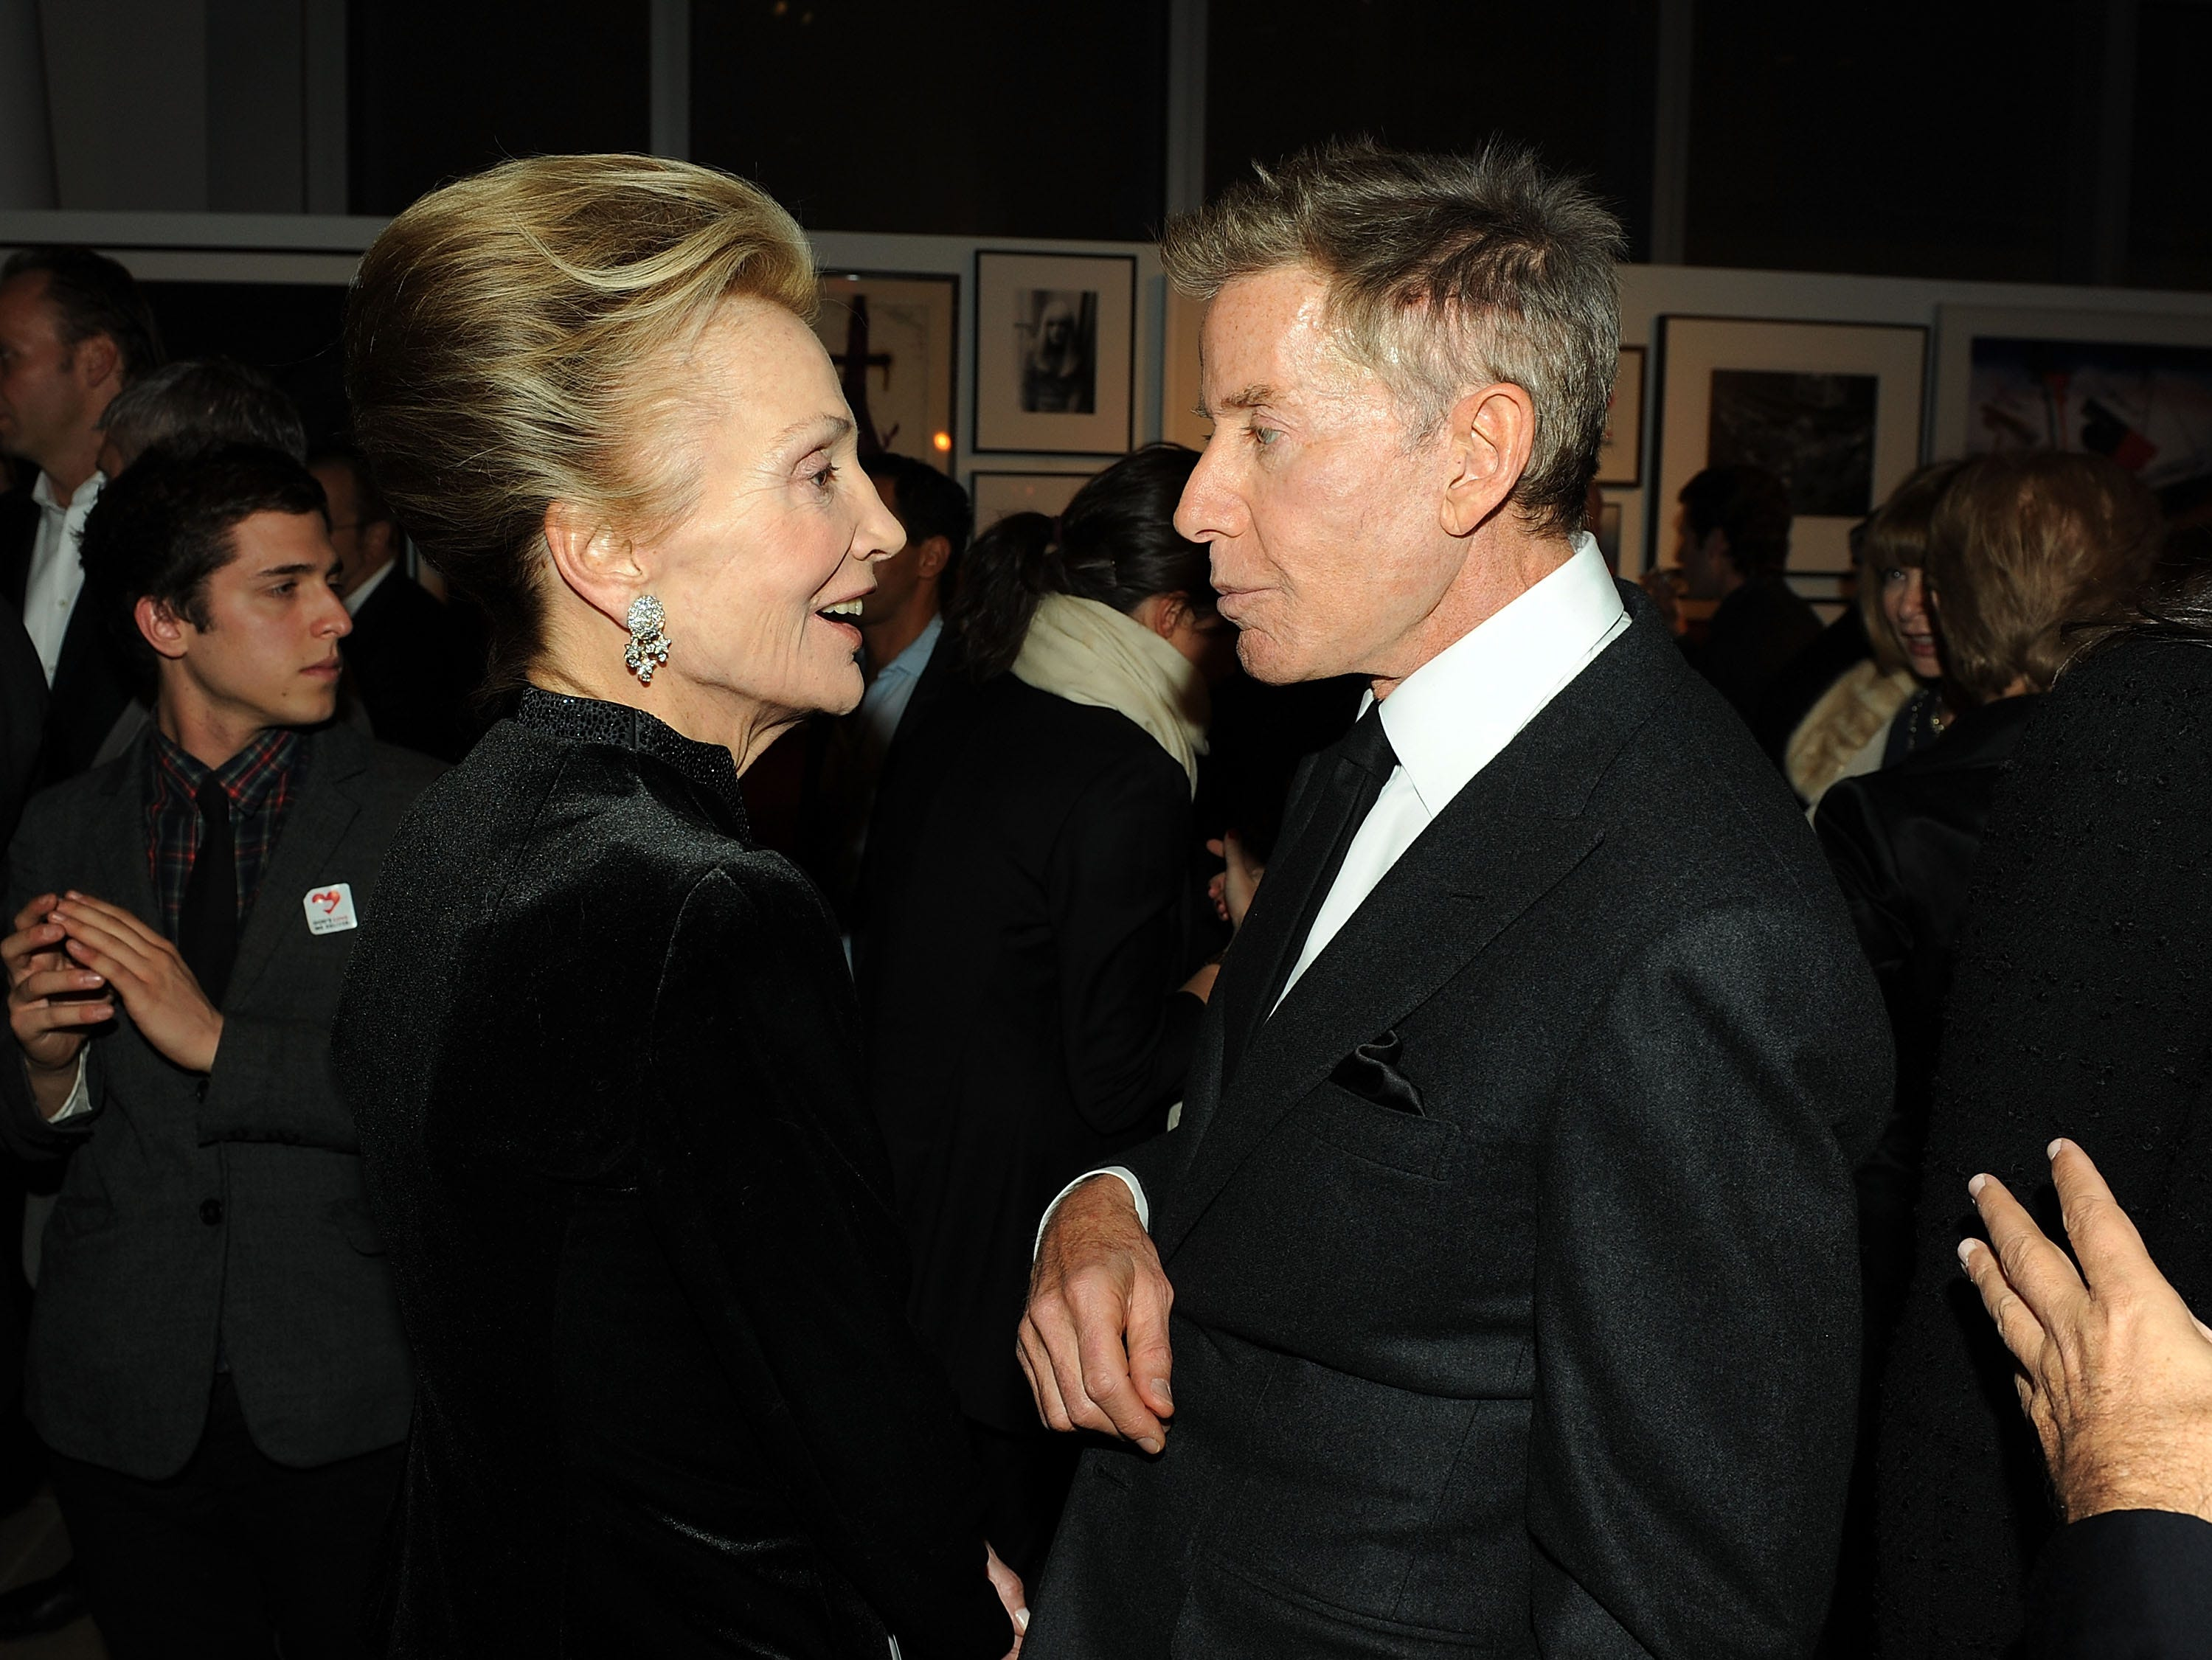 Socialite Lee Radziwill and designer Calvin Klein attend God's Love We Deliver 2009 Golden Heart awards at the IAC Building on October 19, 2009 in New York City.